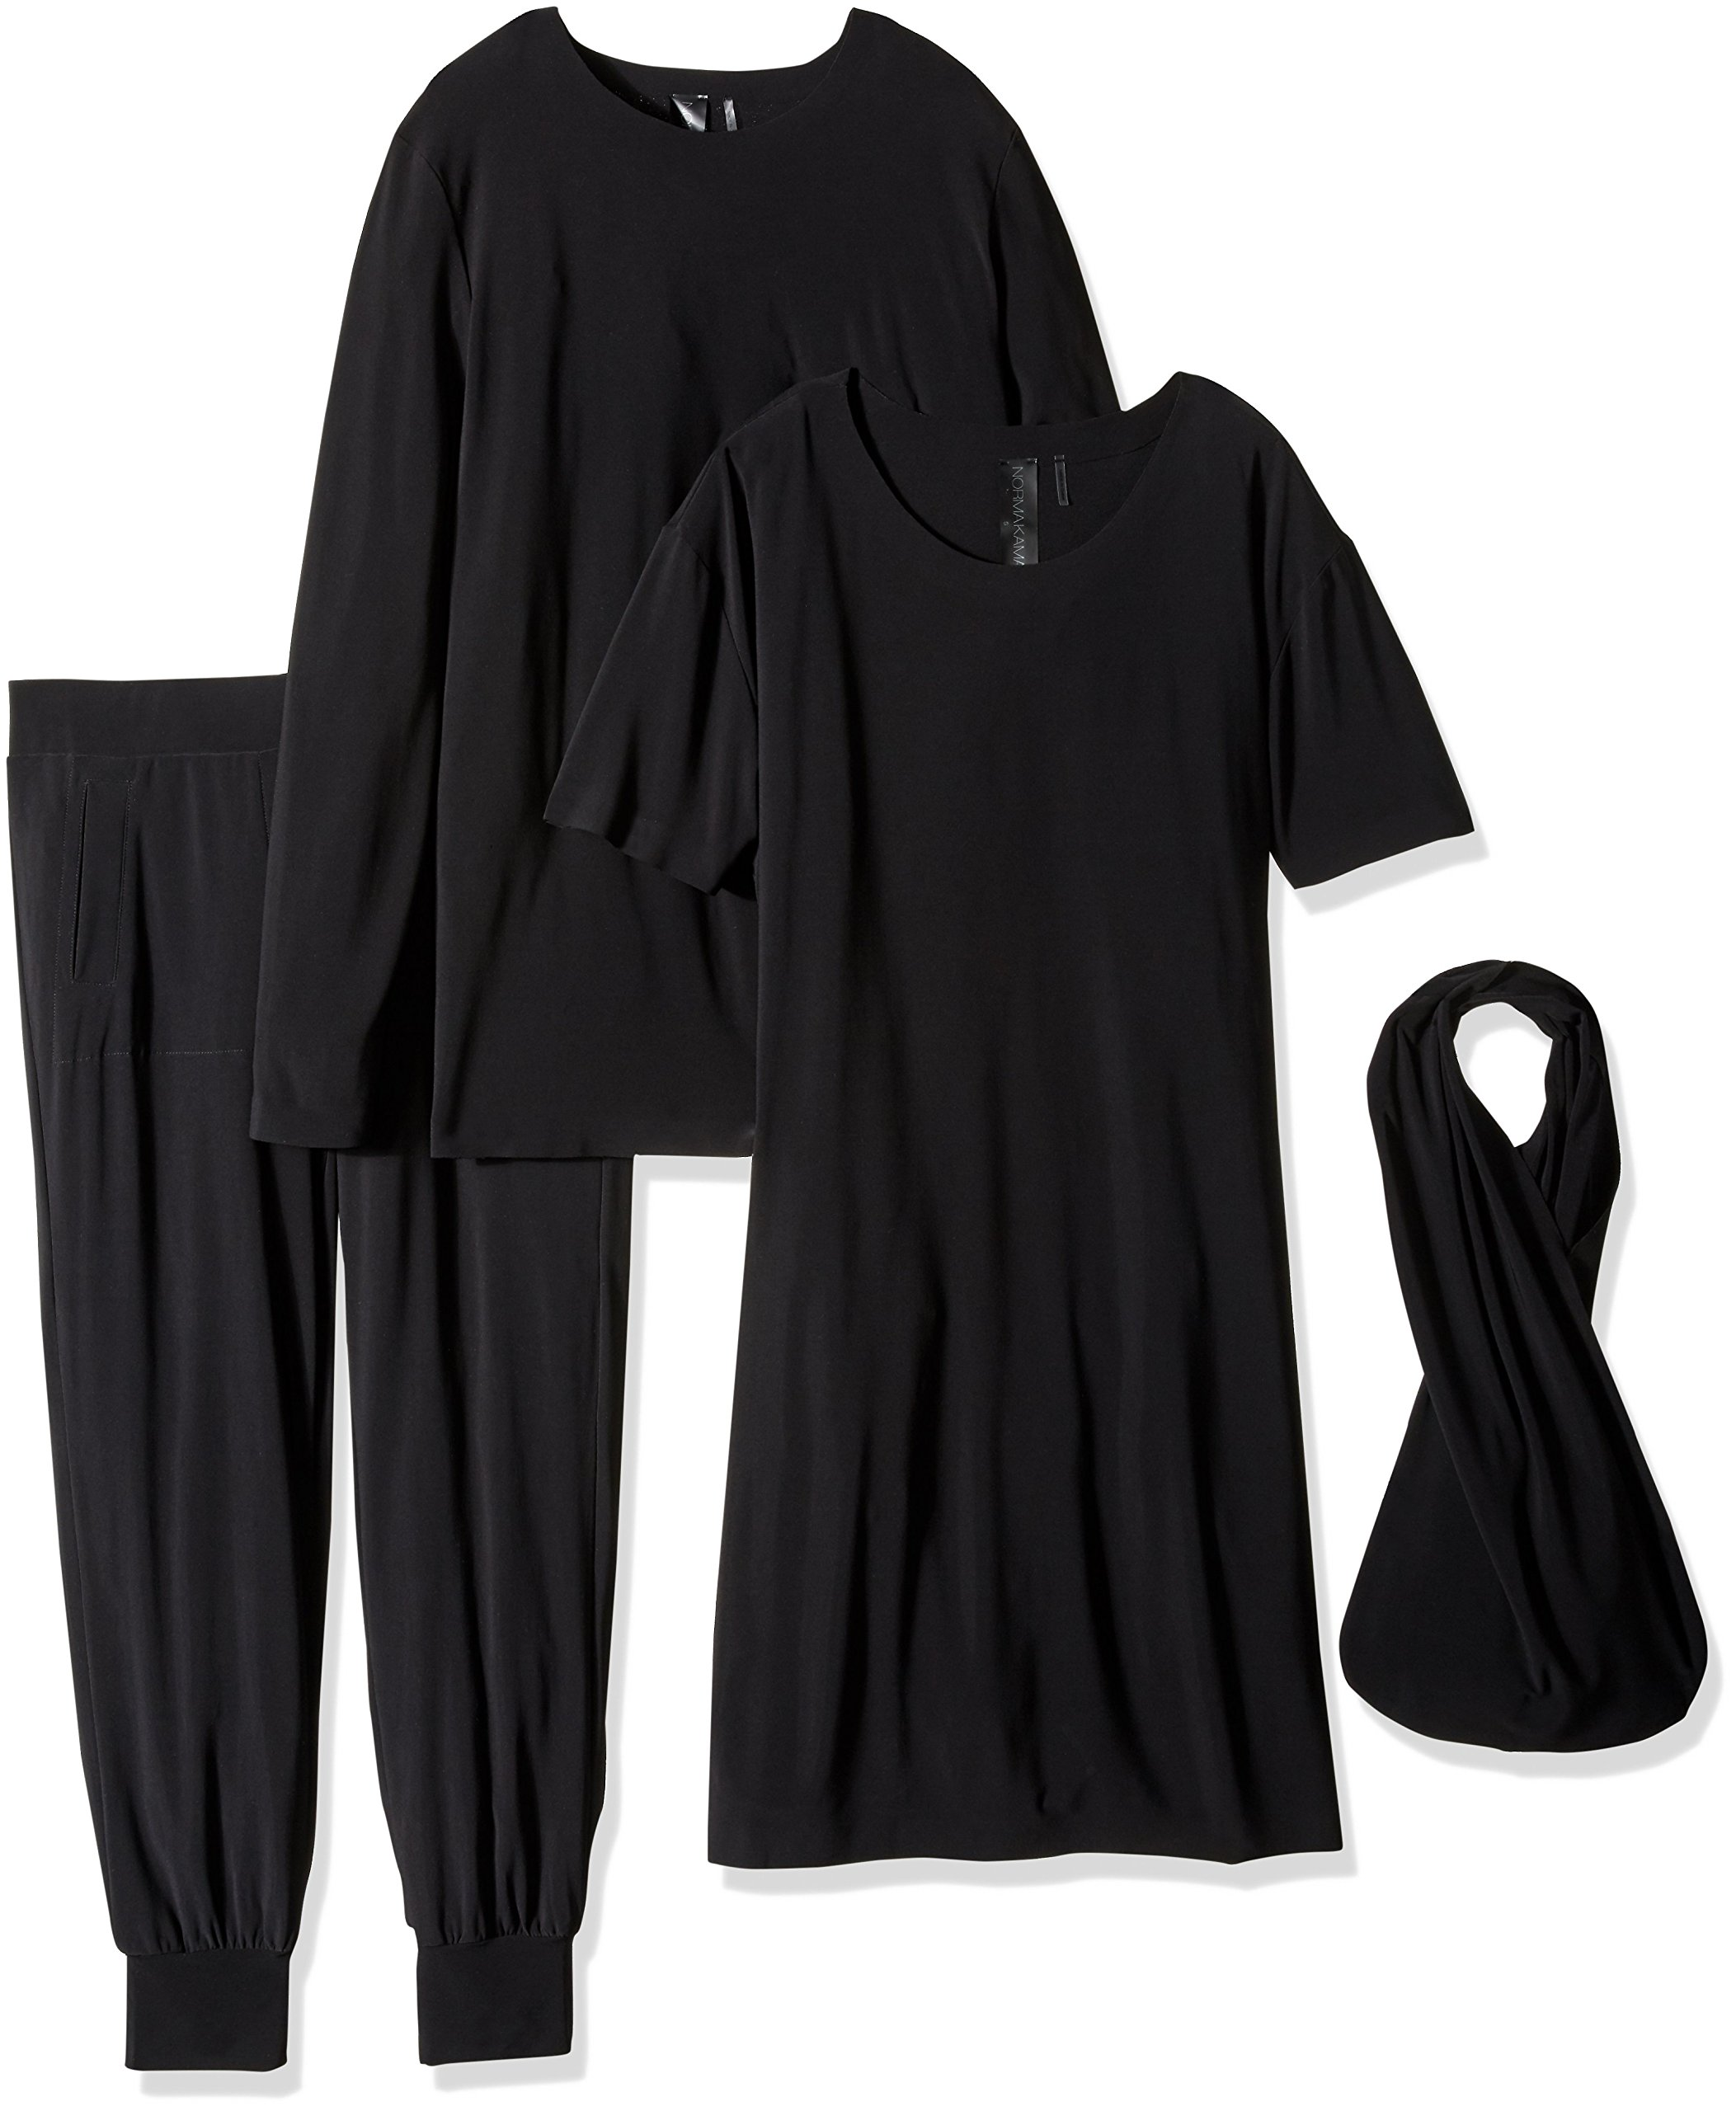 Norma Kamali Women's Go Travel 3 Pc Pack, Black, Small by Norma Kamali